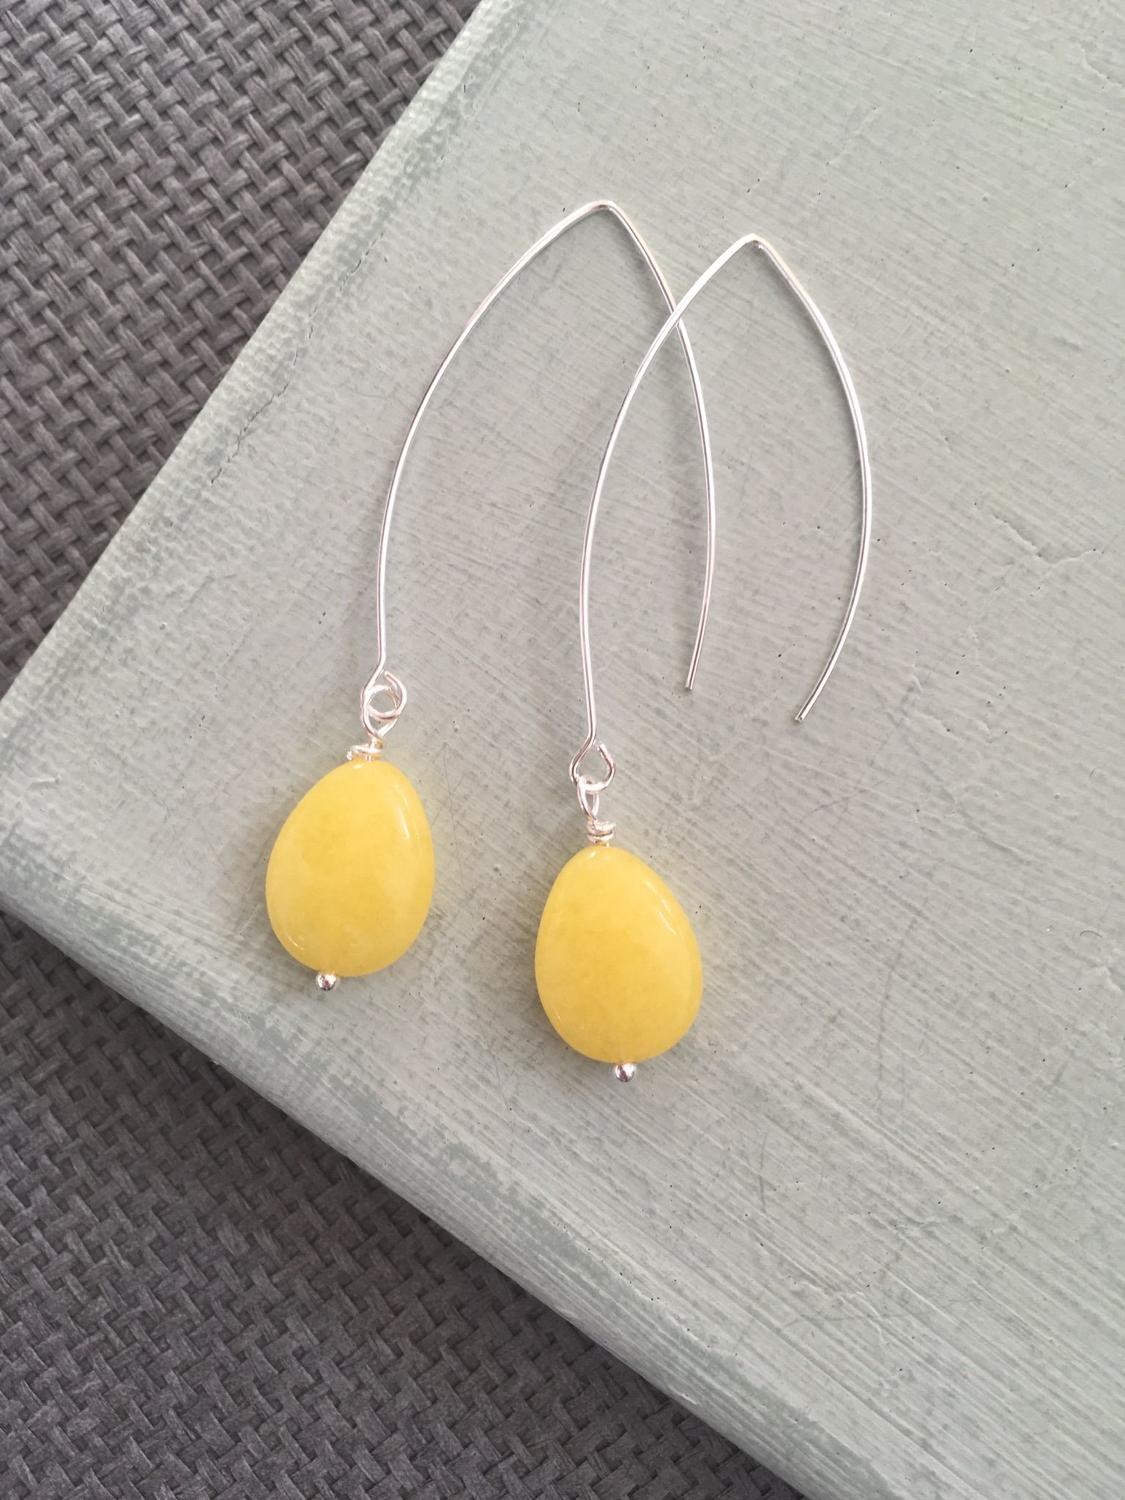 Long drop earrings in yellow